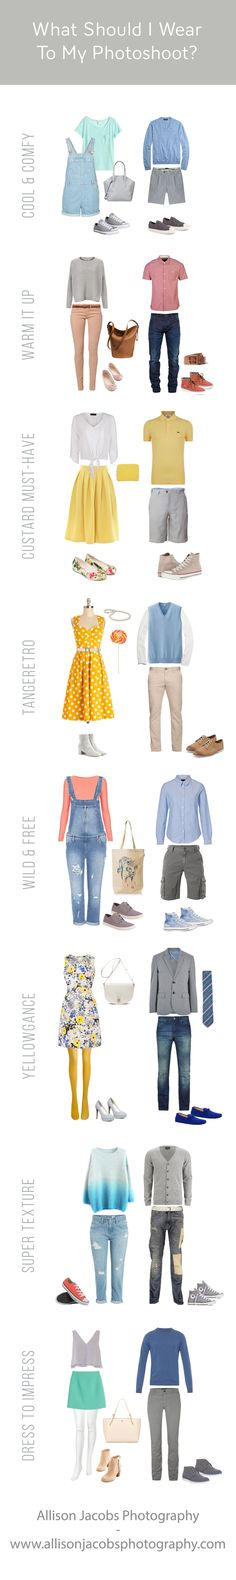 9 outfits for inspiration for what to wear for spring family photos.